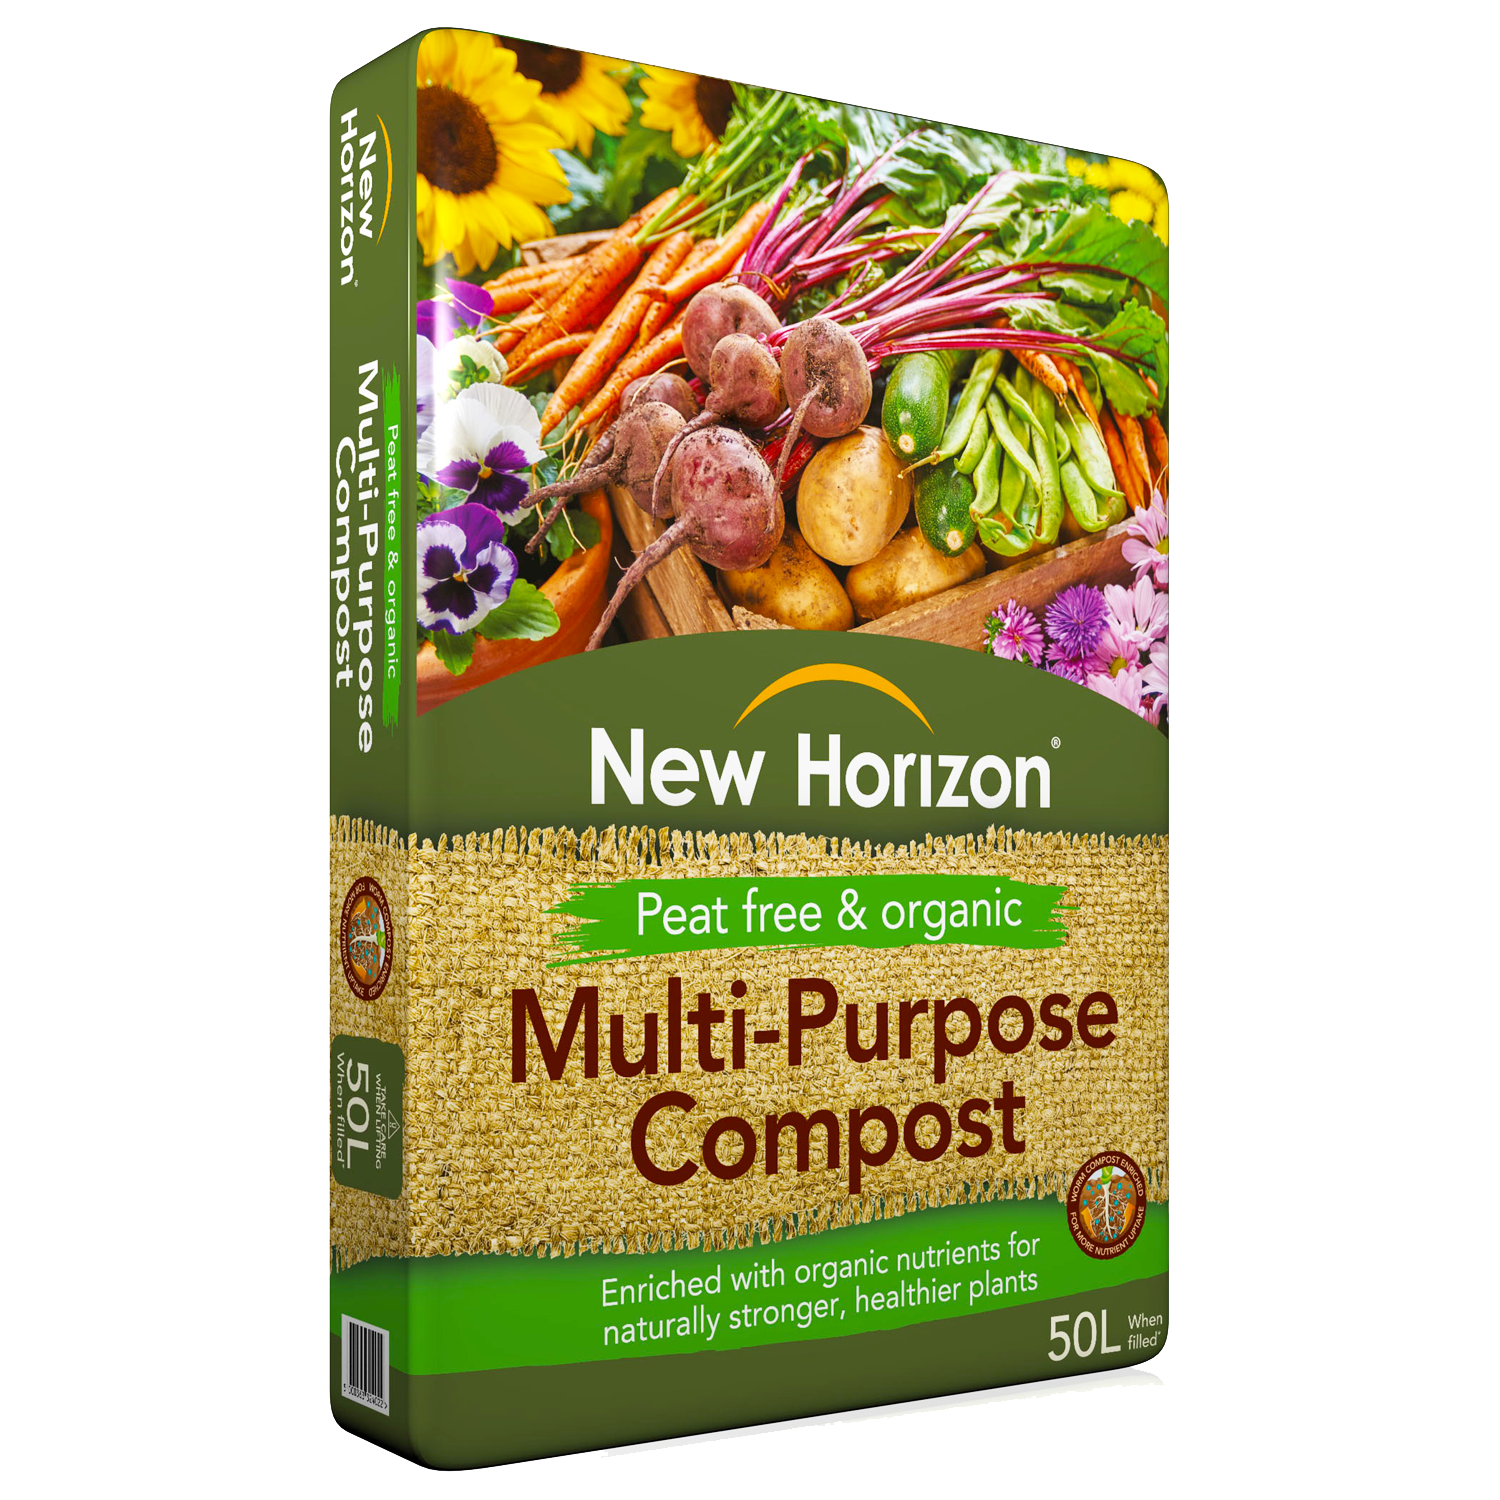 Image for westland multi purpose compost with john innes 50l from - Our Price 10 49